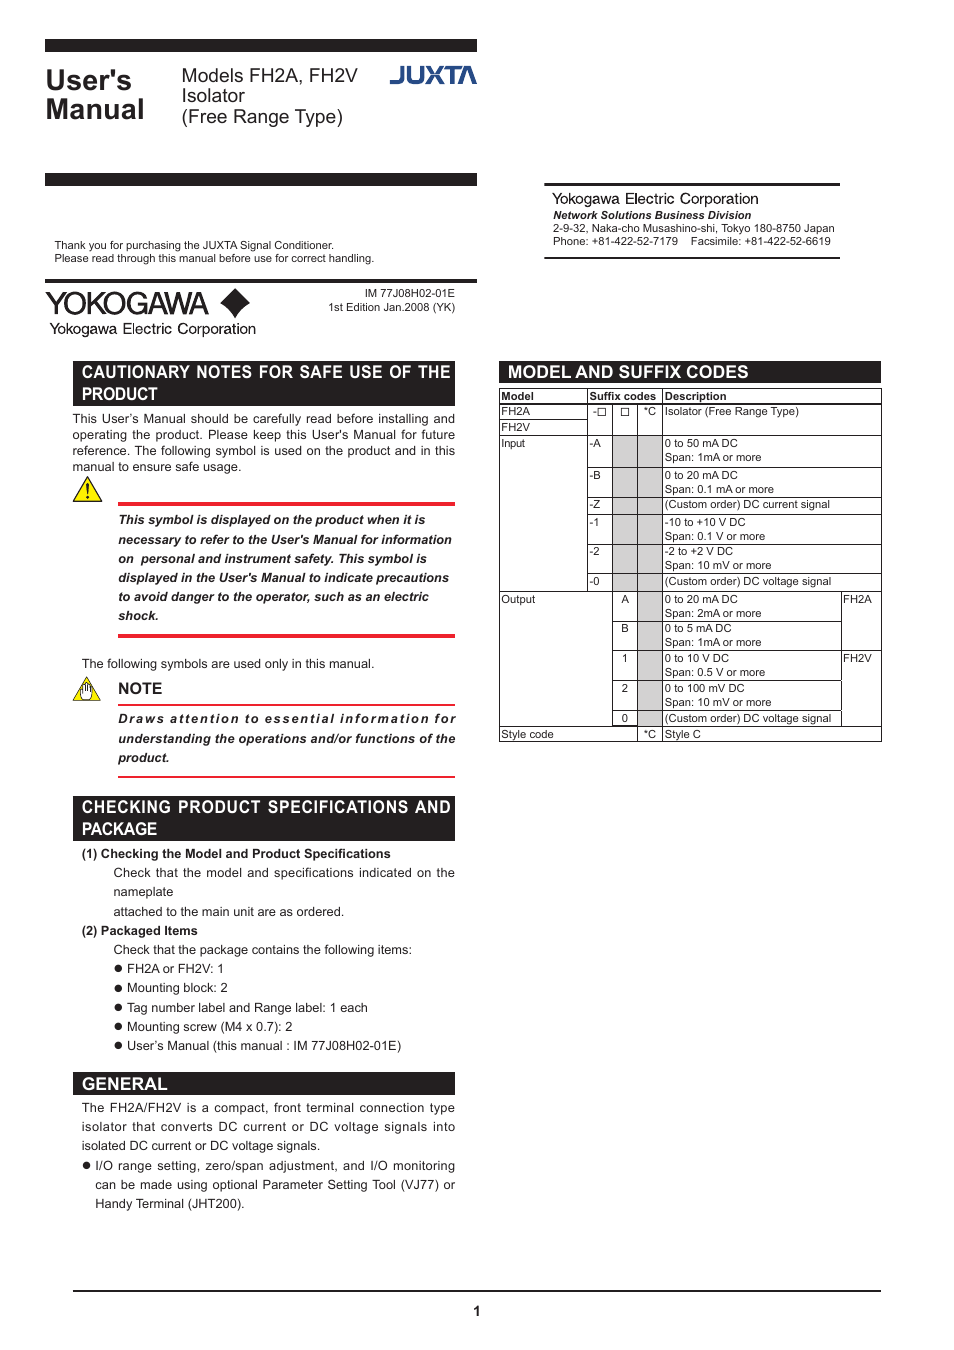 Toyota Camry: Symbols used throughout this manual